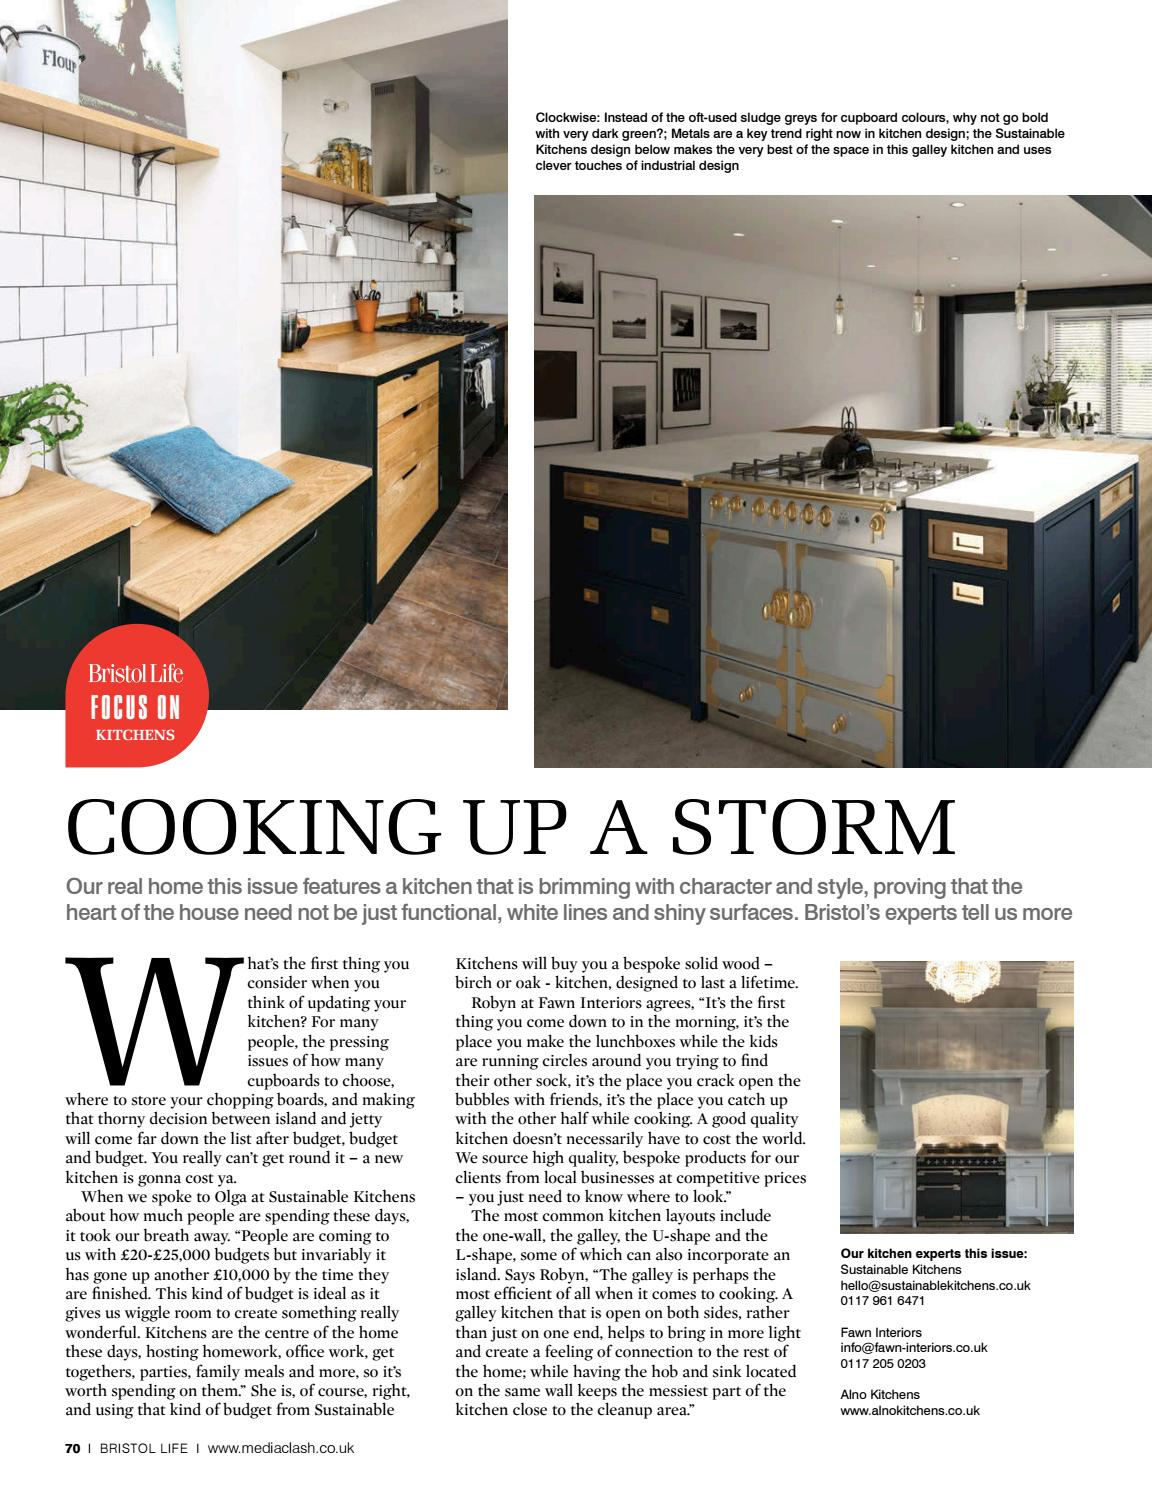 kitchen experts american standard faucet replacement parts bristol life issue 232 by mediaclash issuu